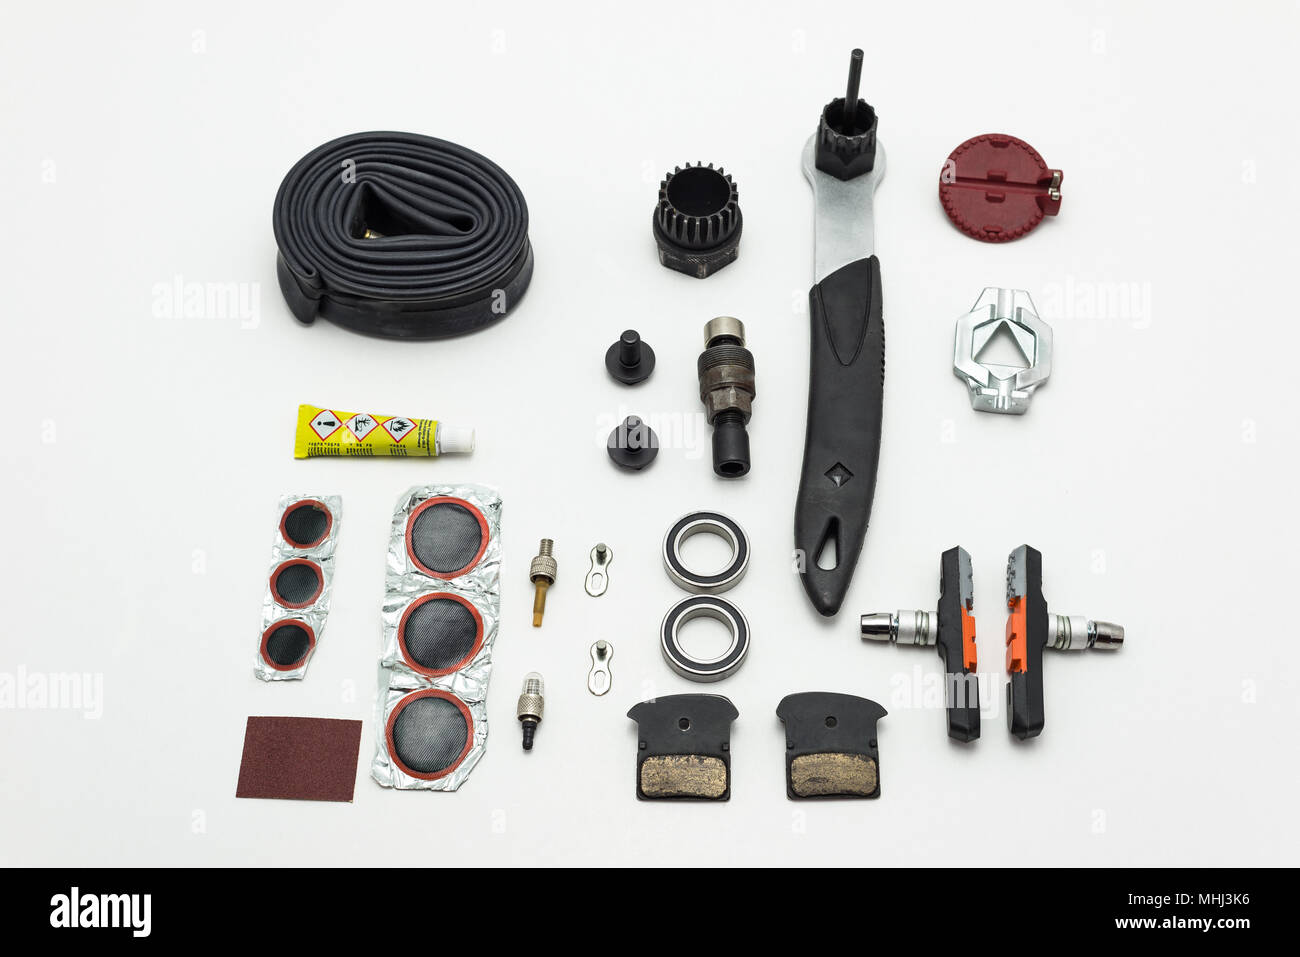 Bicycle Tube Stock Photos Bicycle Tube Stock Images Alamy